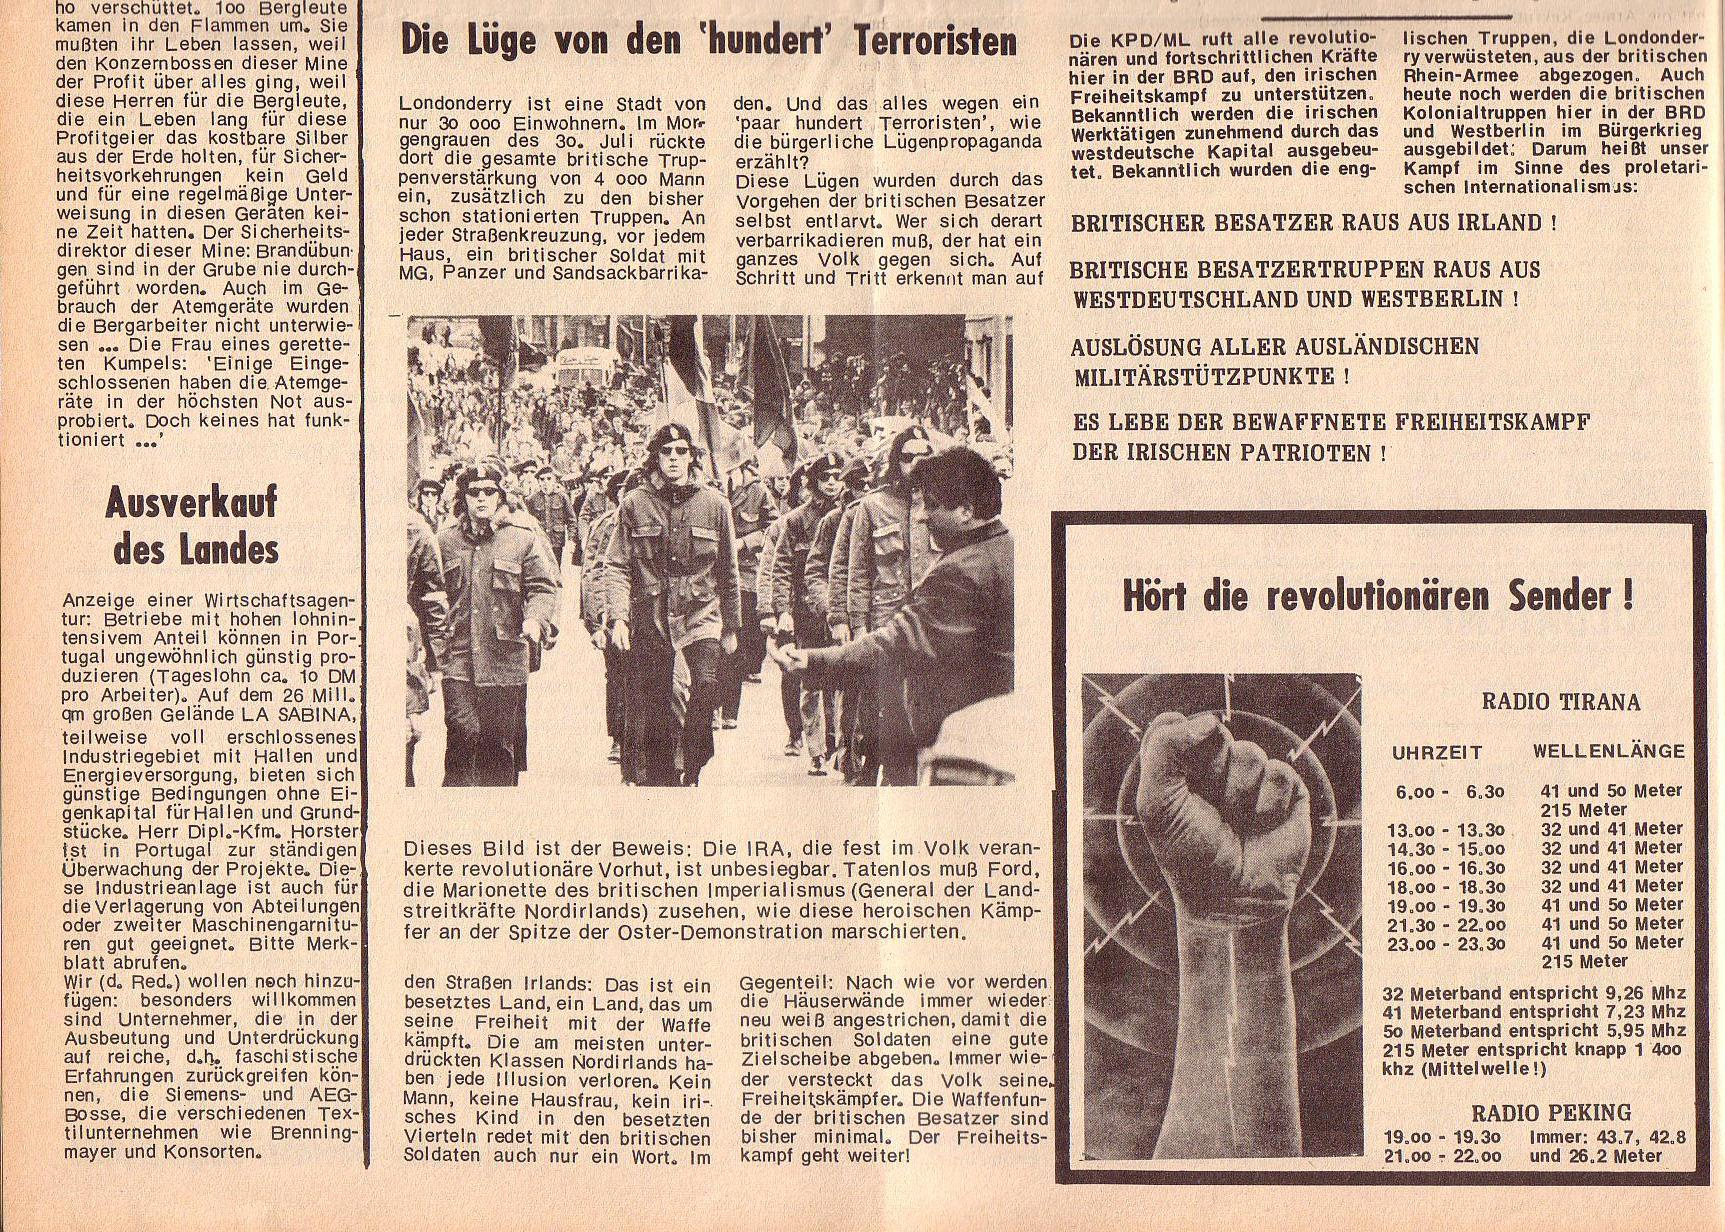 Roter Morgen, 6. Jg., 14. August 1972, Nr. 16, Seite 6b